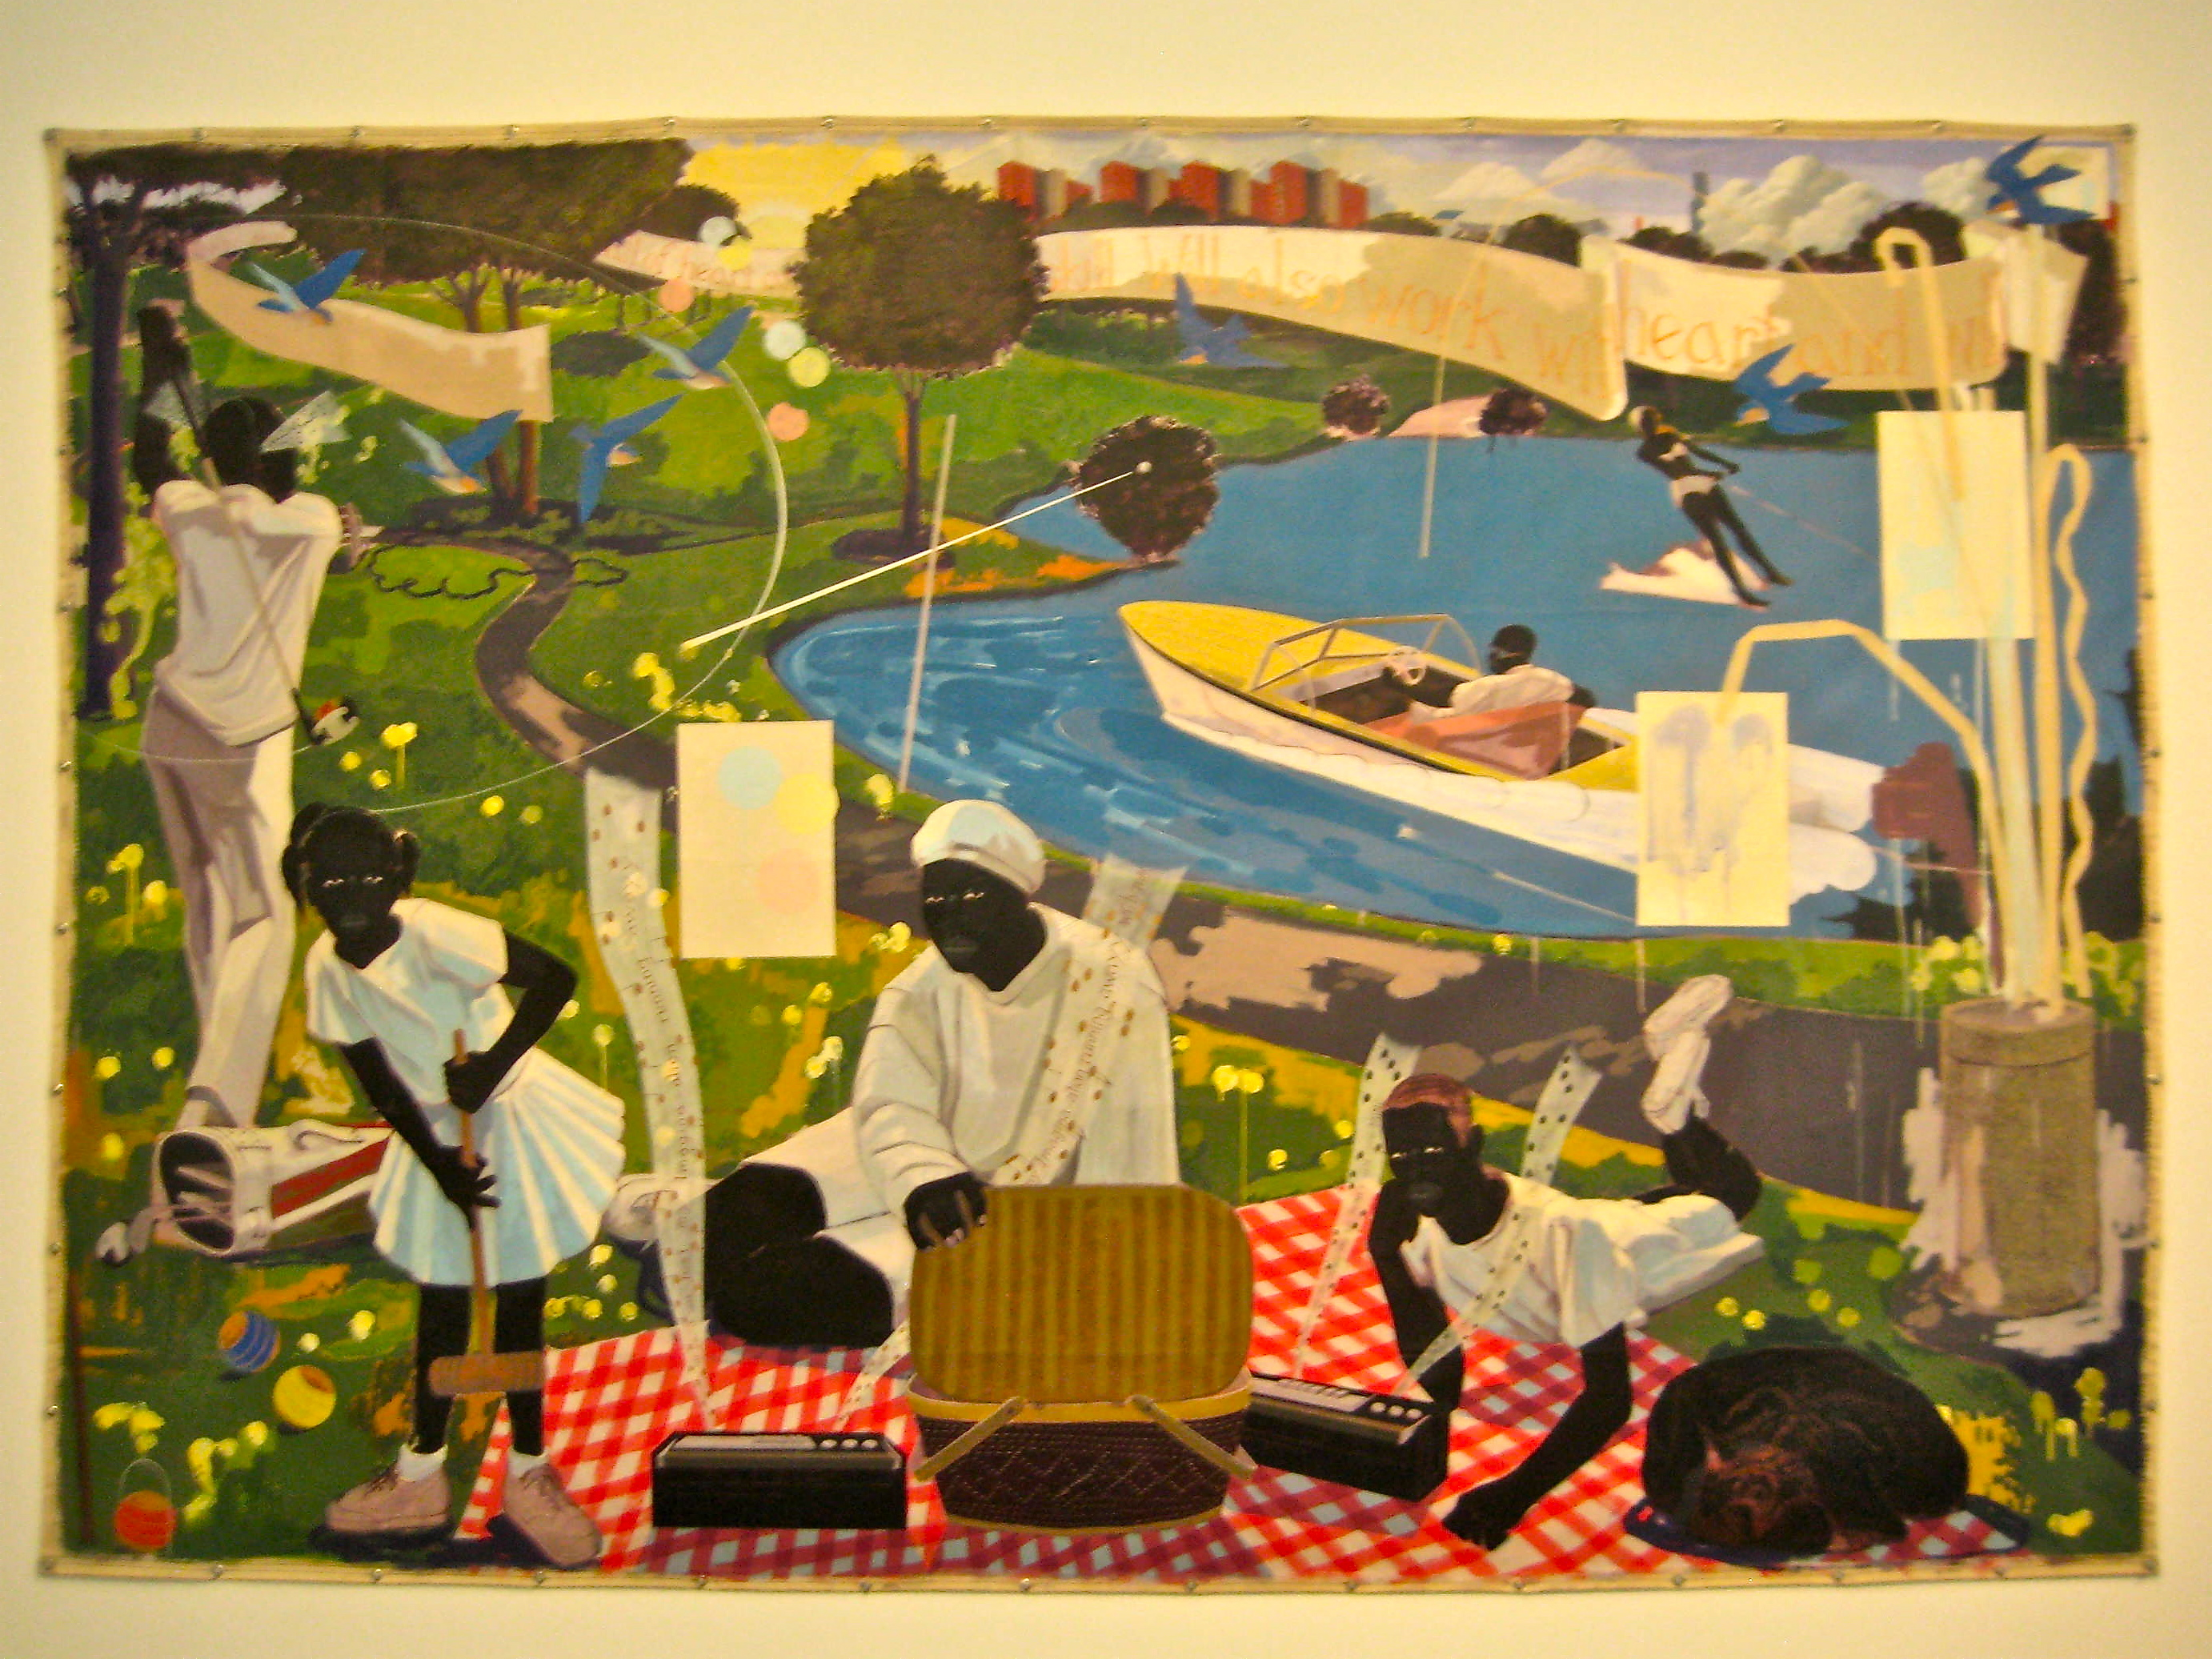 Glimpse of solace: Kerry James Marshall at MCA